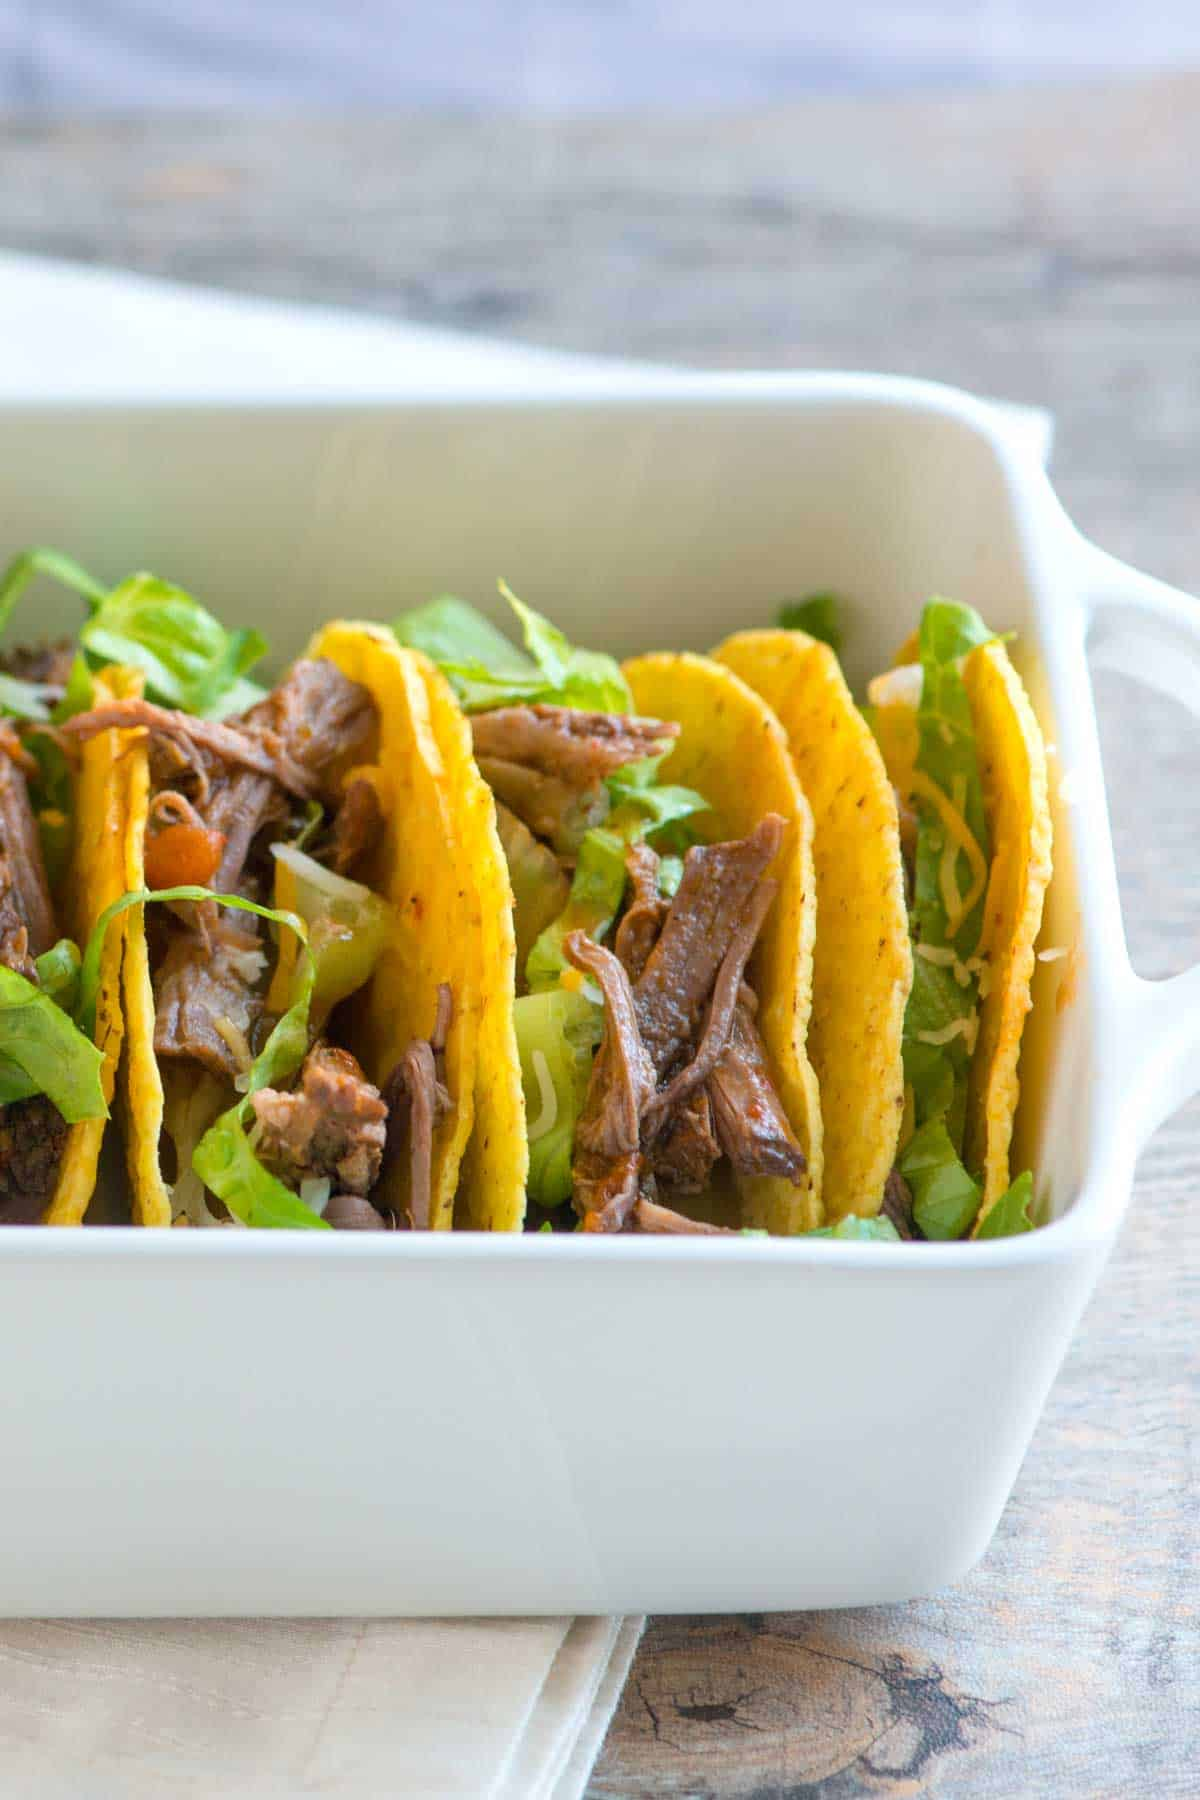 How to Make Fire Roasted Tomato and Beef Tacos in a Slow Cooker